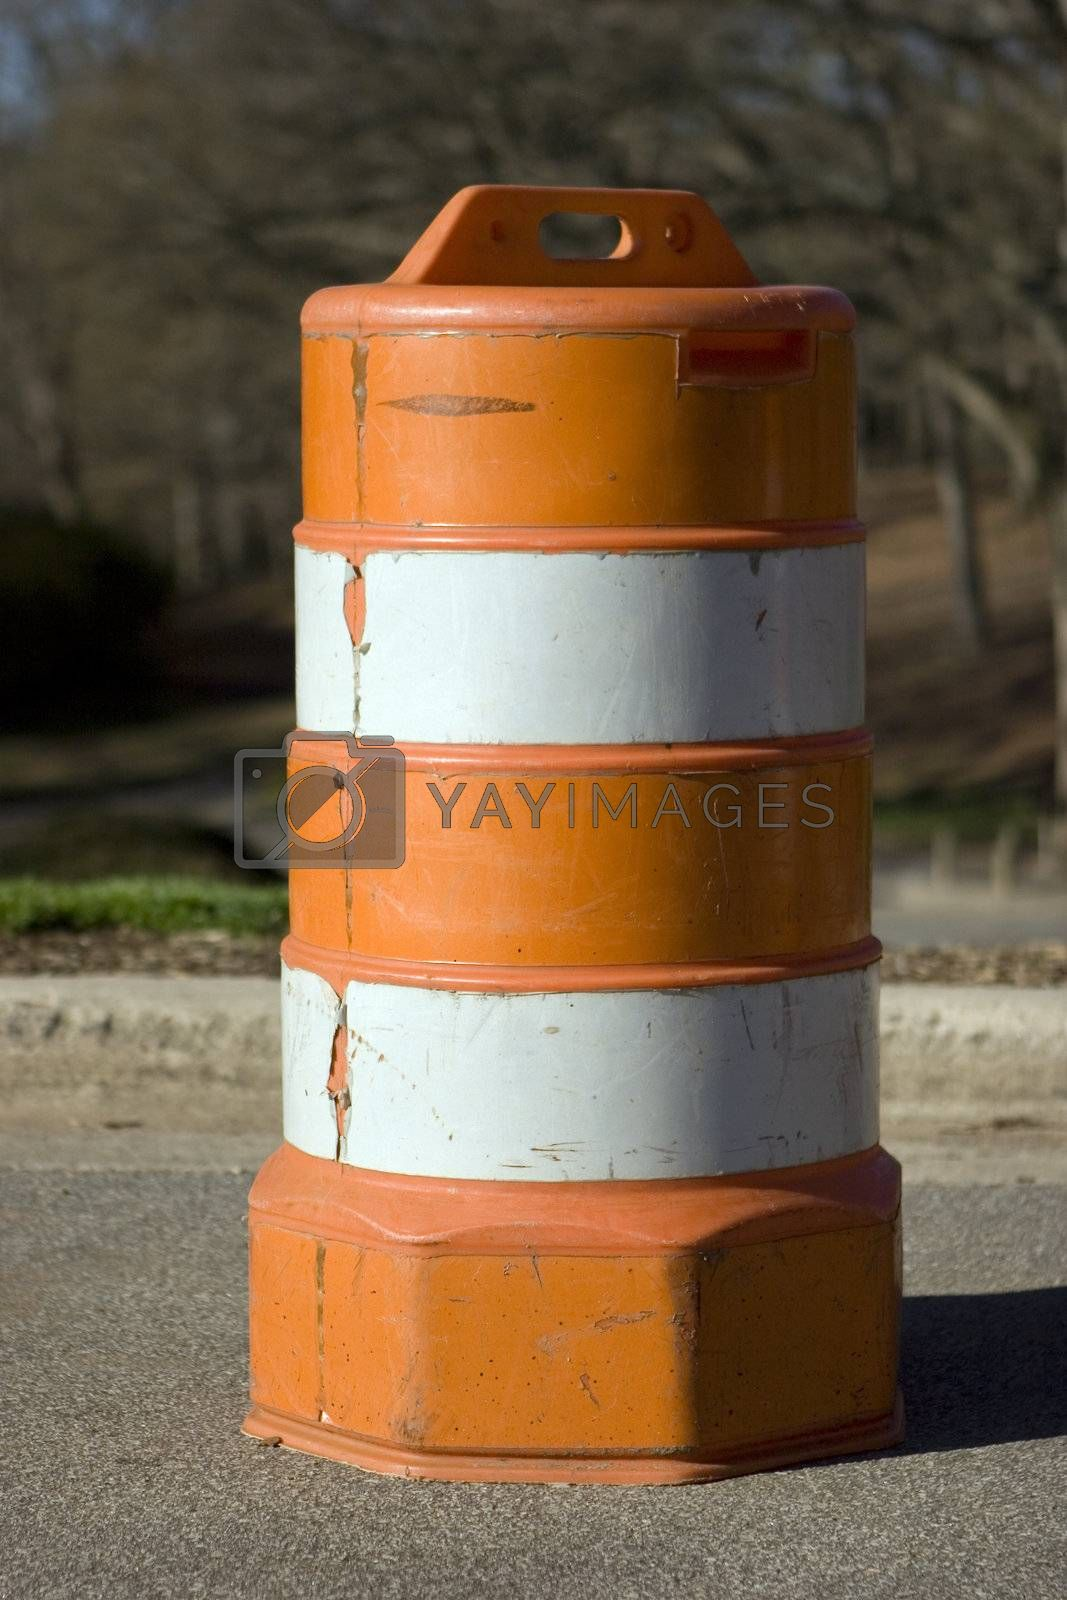 A traffic barrel on the side of the road.